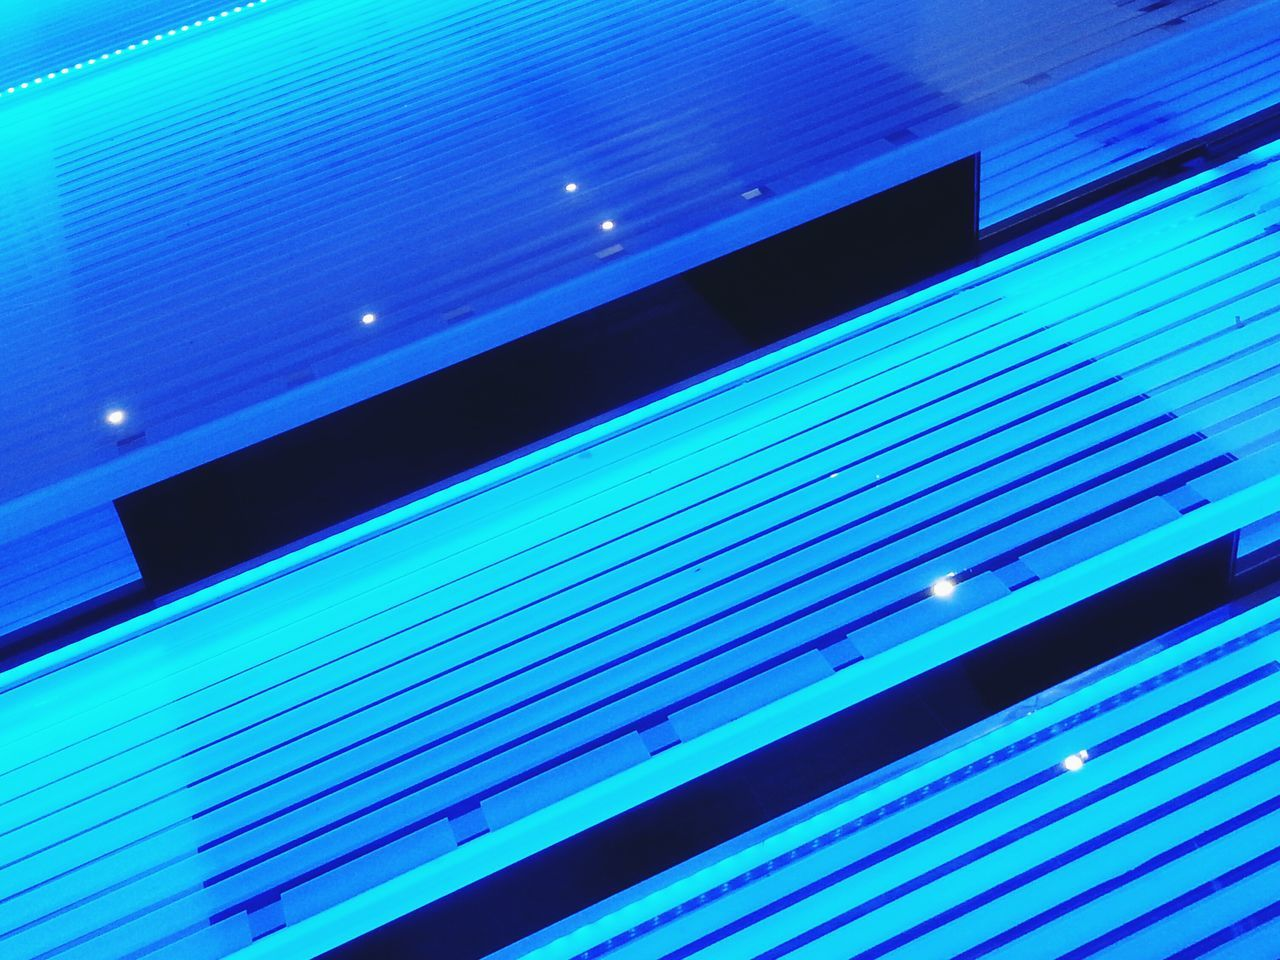 Stairs of light No People Multi Colored Close-up Modern Futuristic Ballett Monaco LED Glass Stairs Transparency Patterns Blue Lights EyeEmNewHere